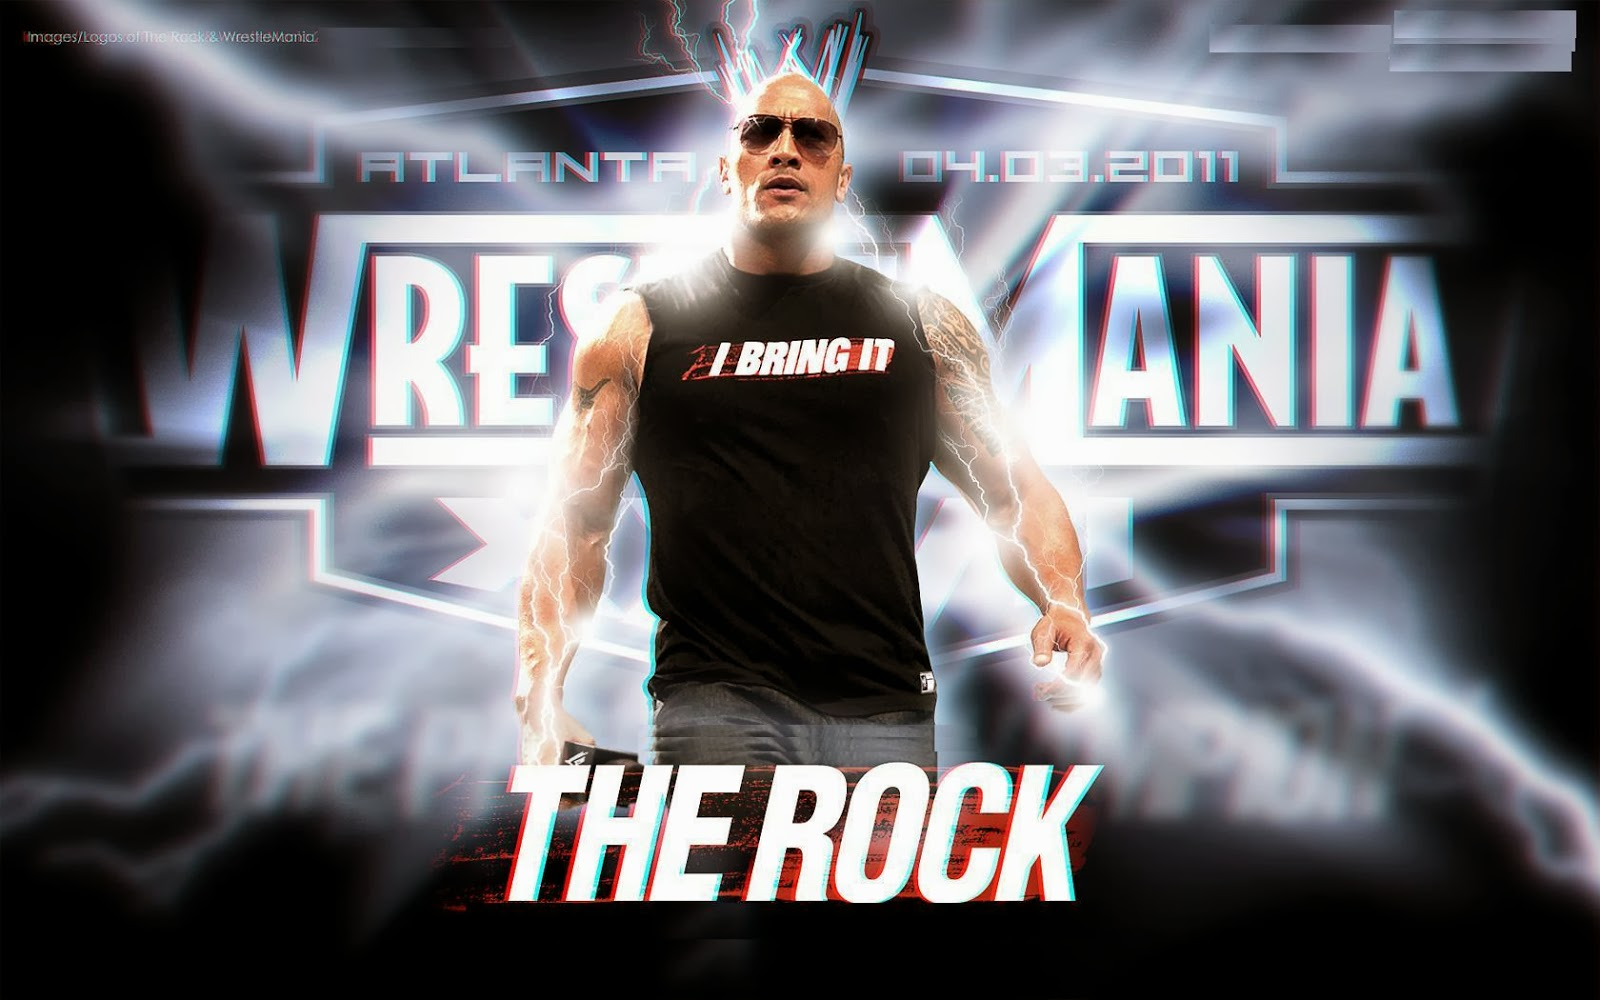 The Rock Hd Wallpapers Free Download | WWE HD WALLPAPER ...